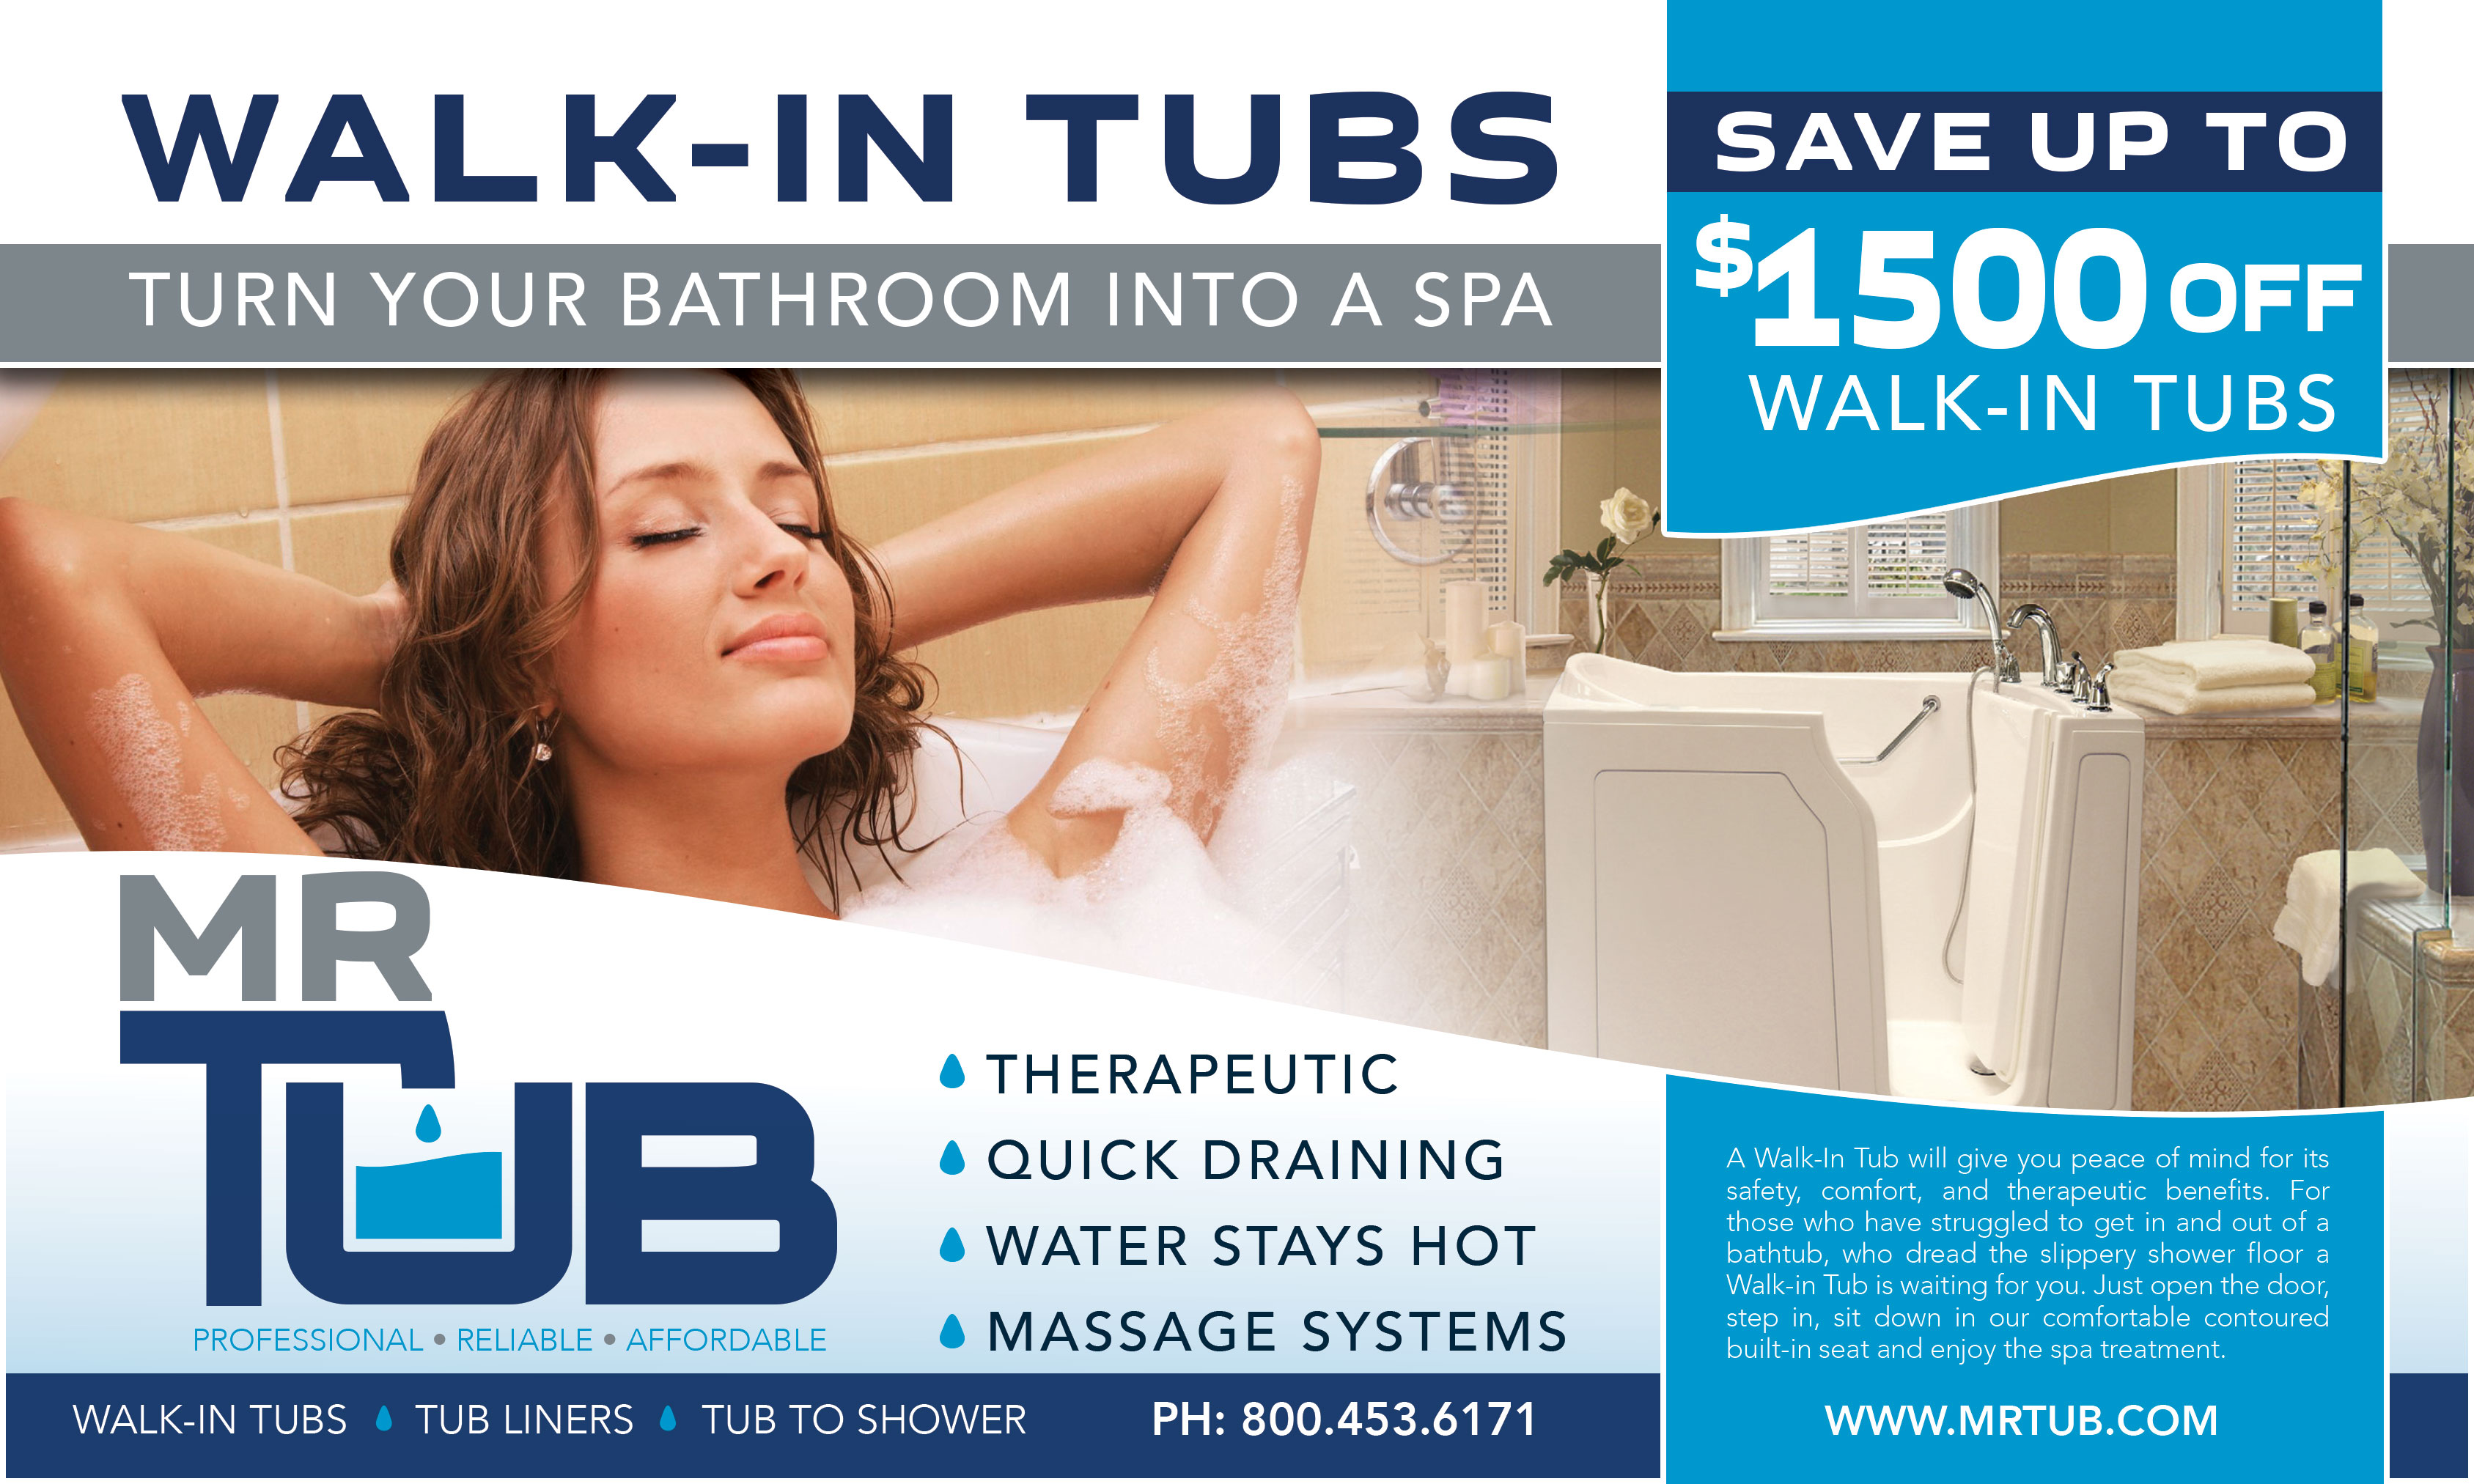 Special deal from Mr. Tub